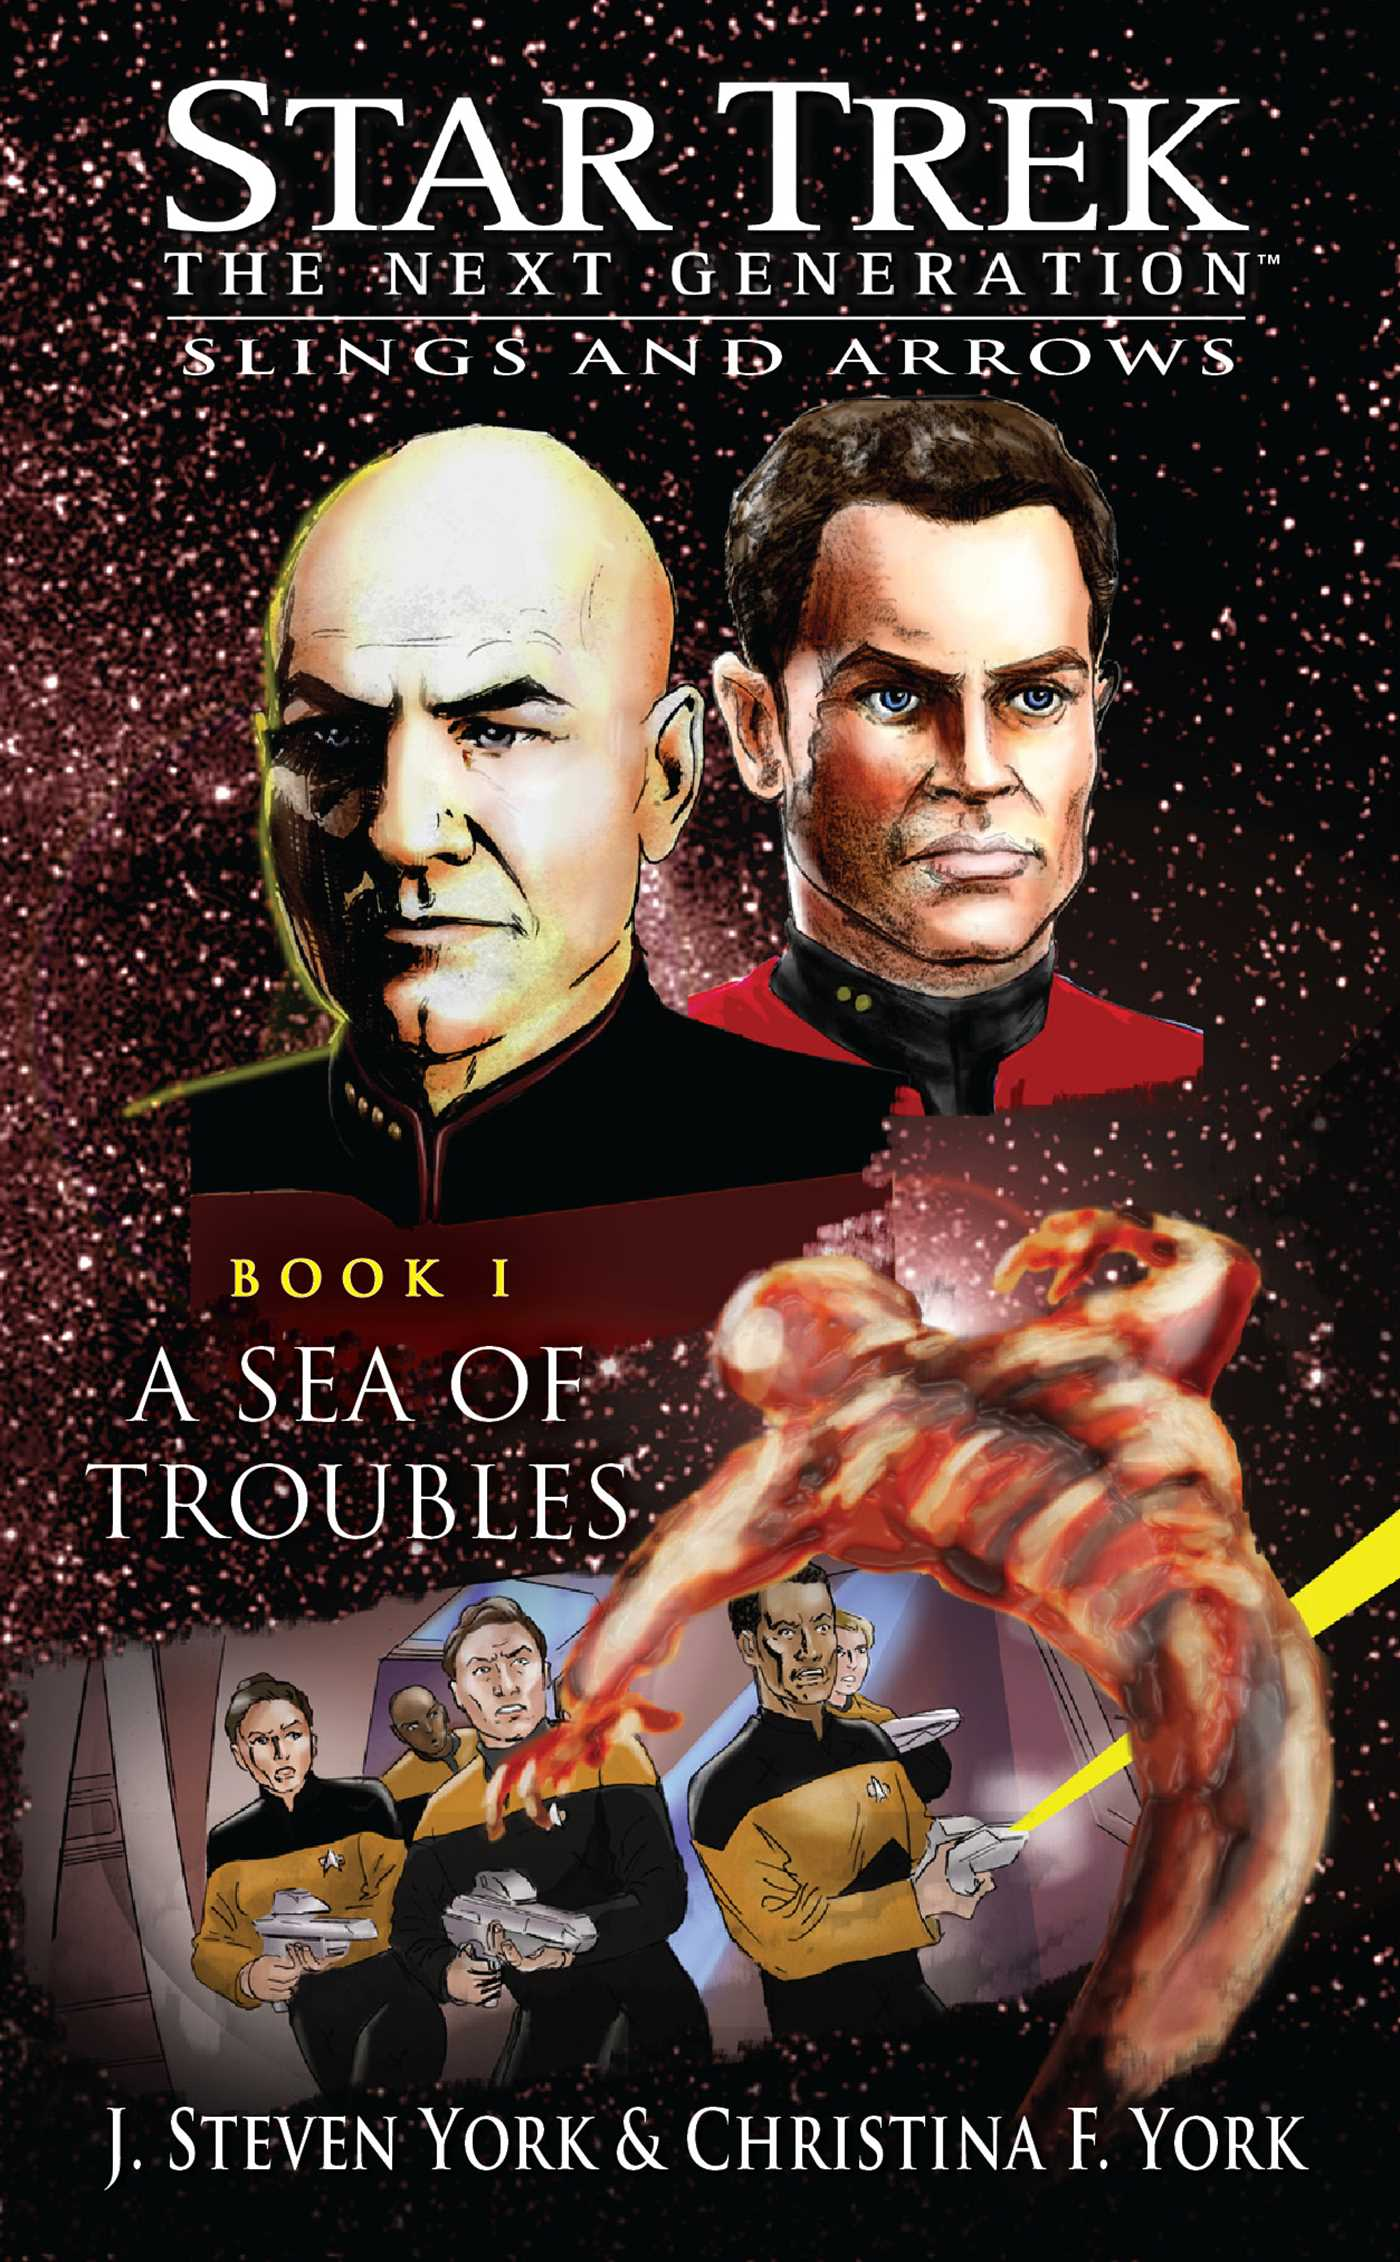 Star trek the next generation a sea of troubles 9781416550082 hr